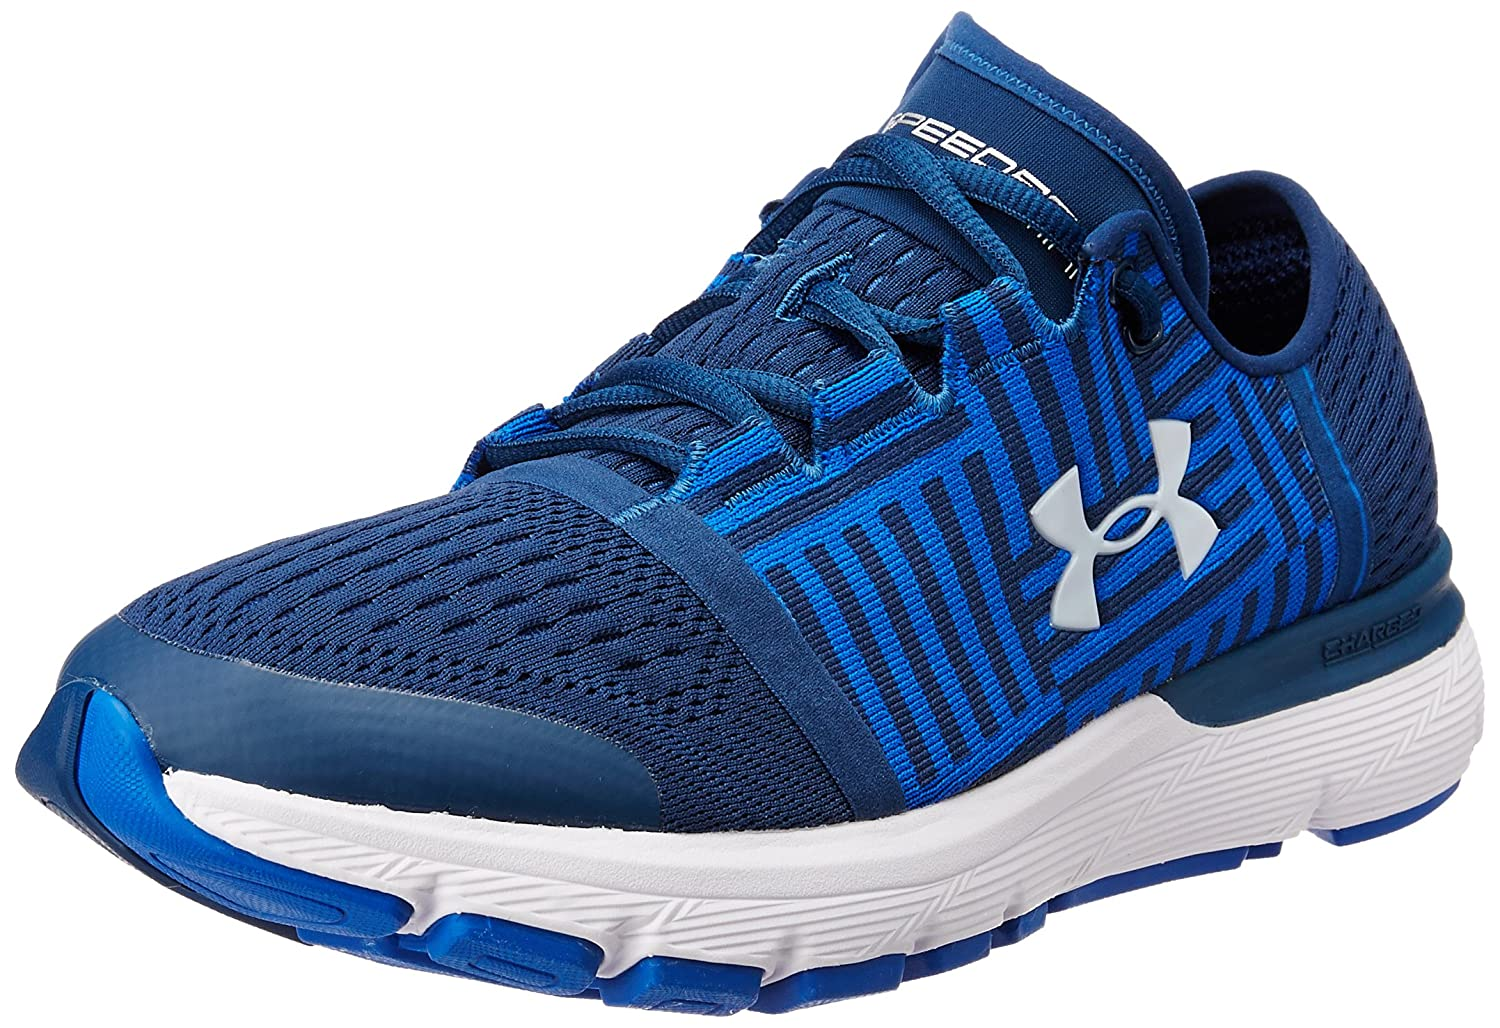 Under Armour Men s Speedform Gemini 3 Running Shoes  Buy Online at Low  Prices in India - Amazon.in 8d999c588750